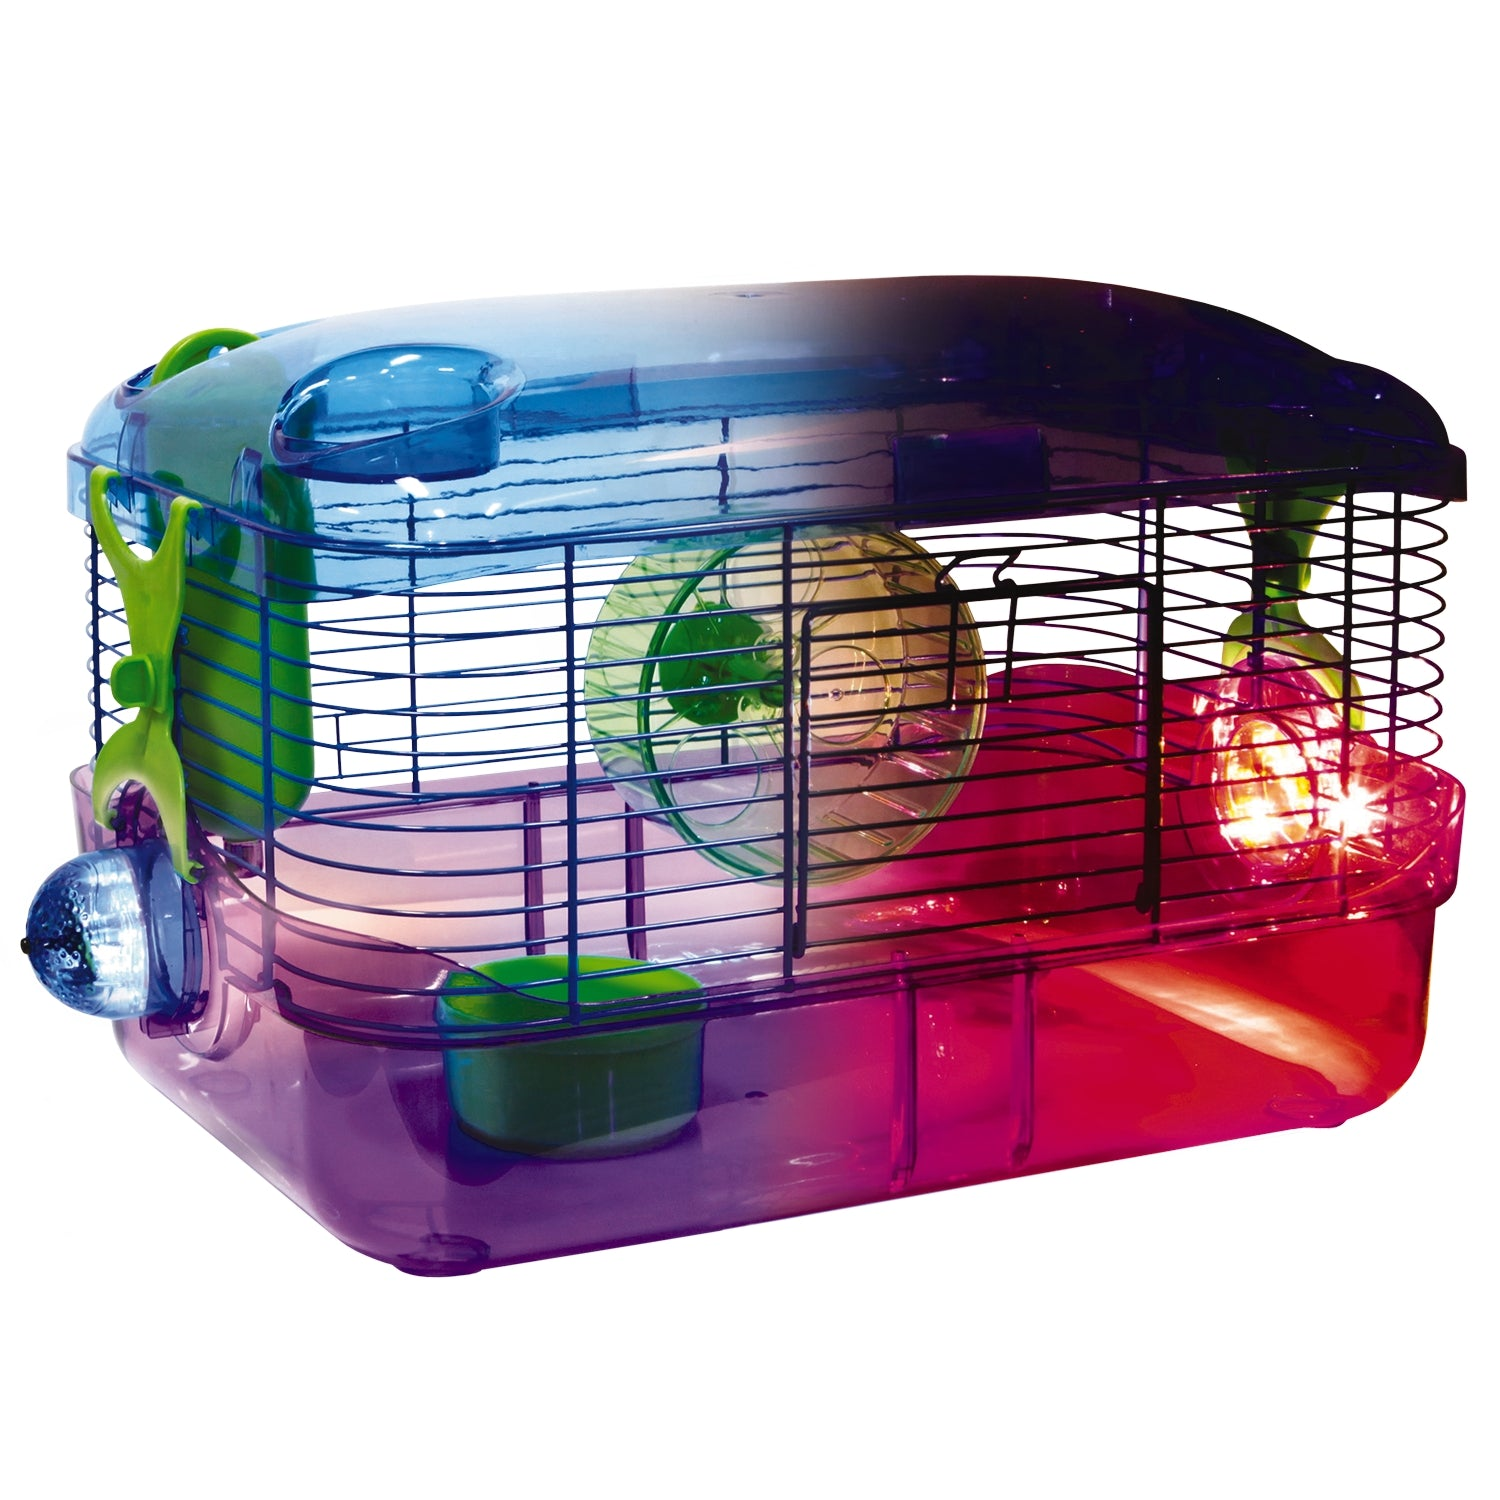 Kaytee Crittertrail LED Lighted Habitat